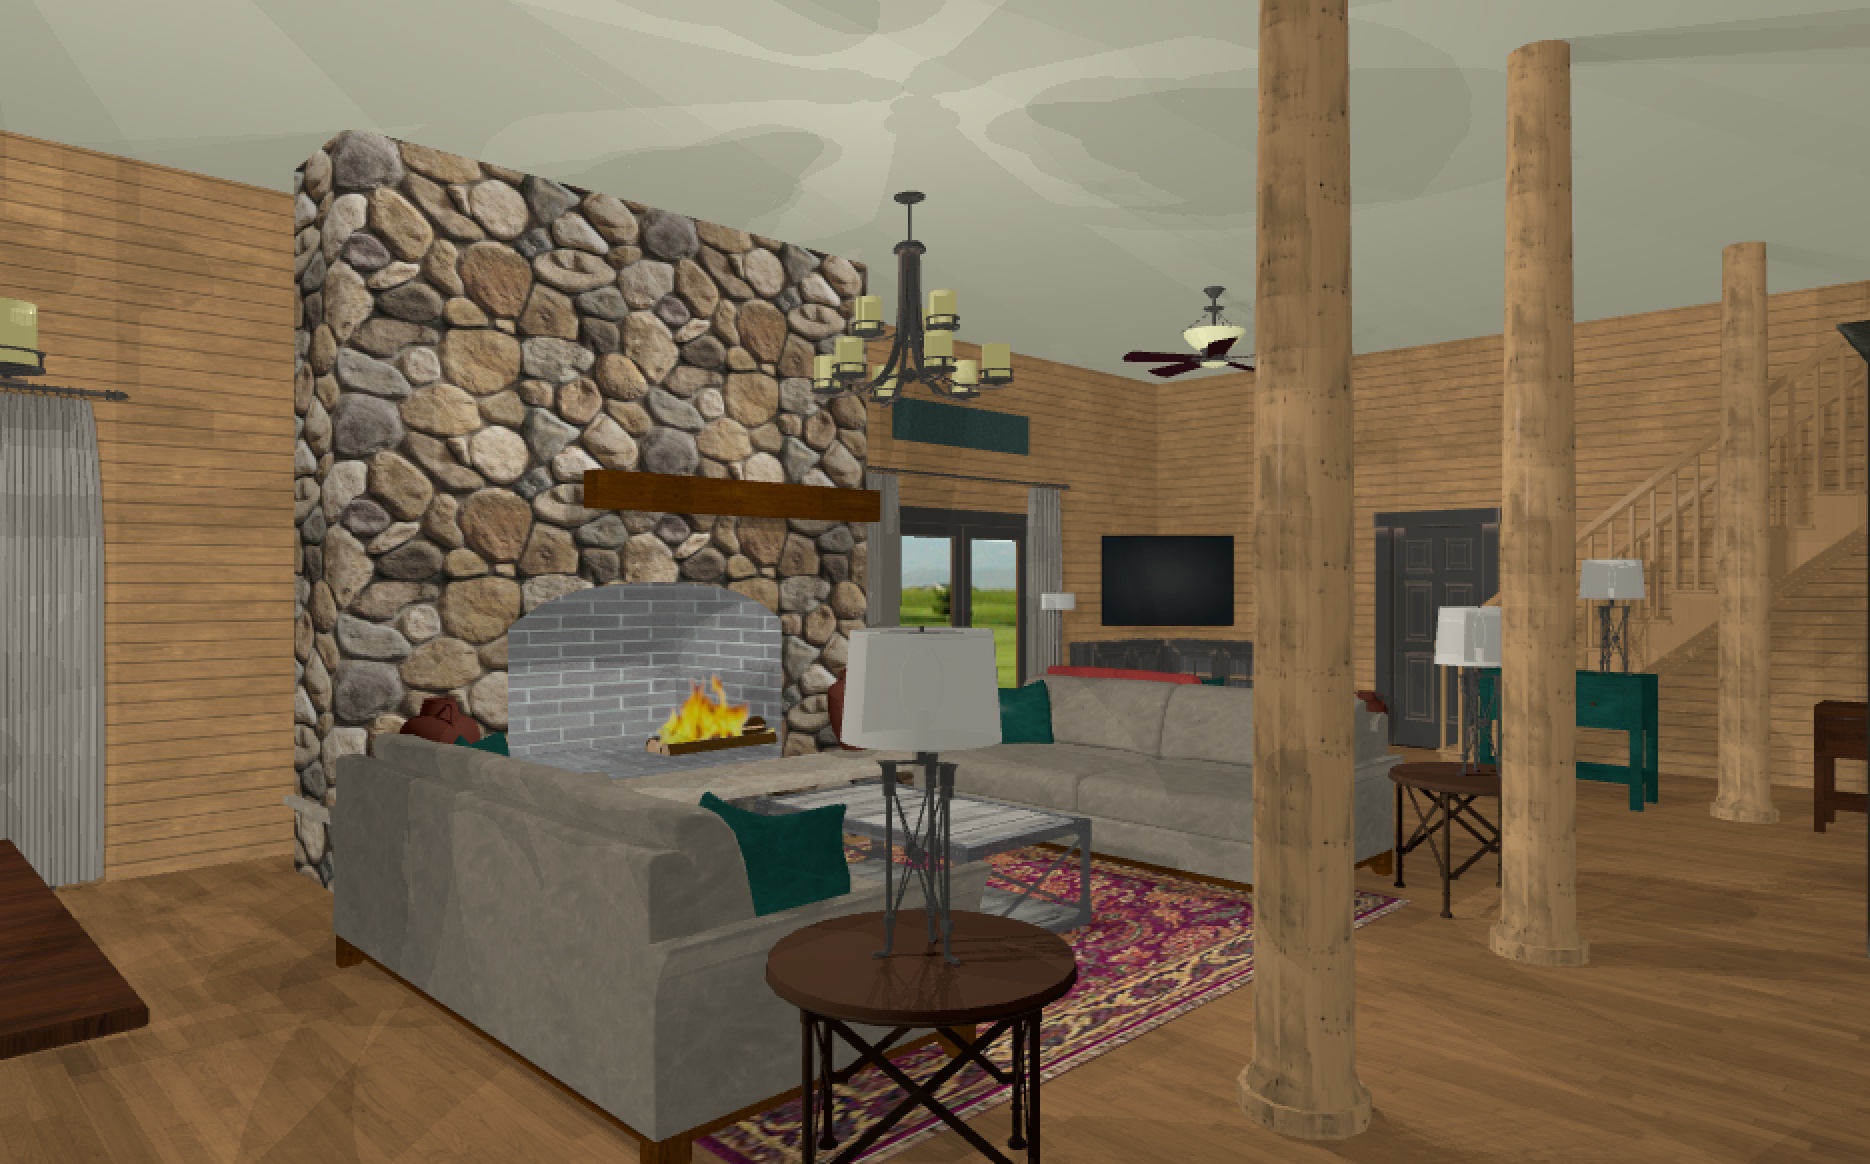 One of the early virtual drawings on this project. It helps so much to see ideas in the space so that we can visualize the final look. As you can see, we have changed the furniture arrangement from the early discussions.